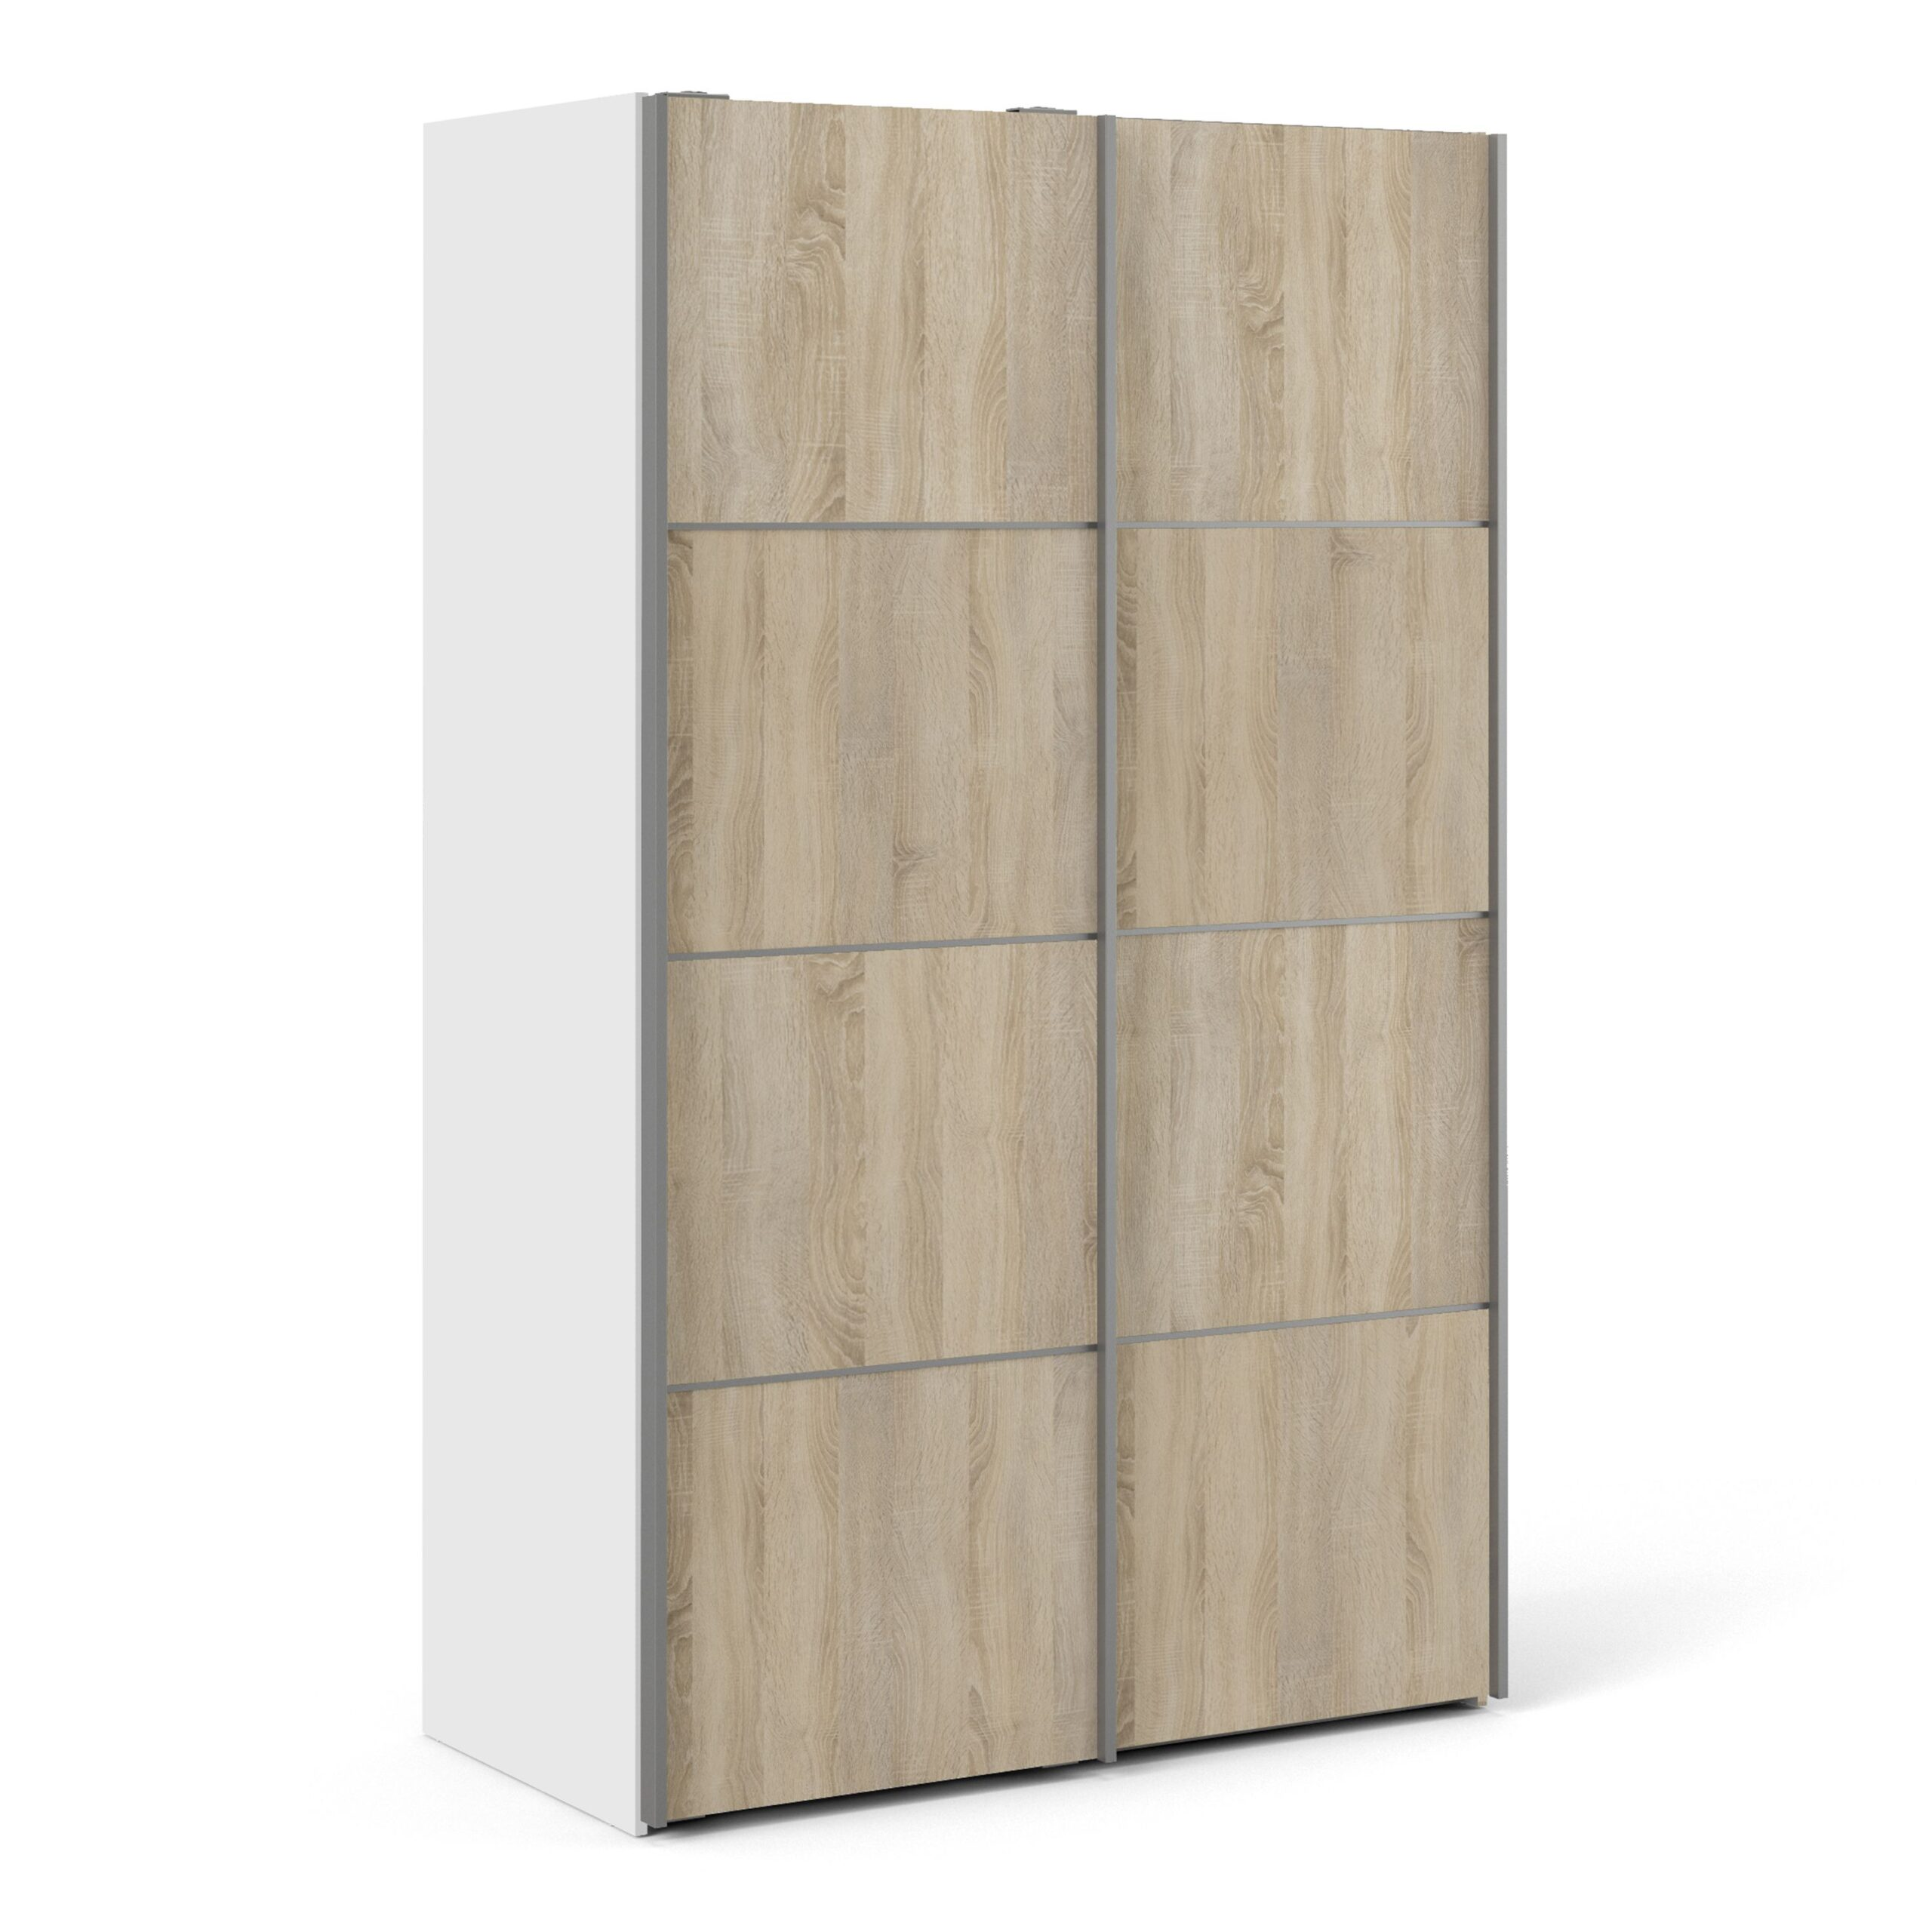 Phillipe Sliding Wardrobe 120cm in White with Oak Doors with 5 Shelves